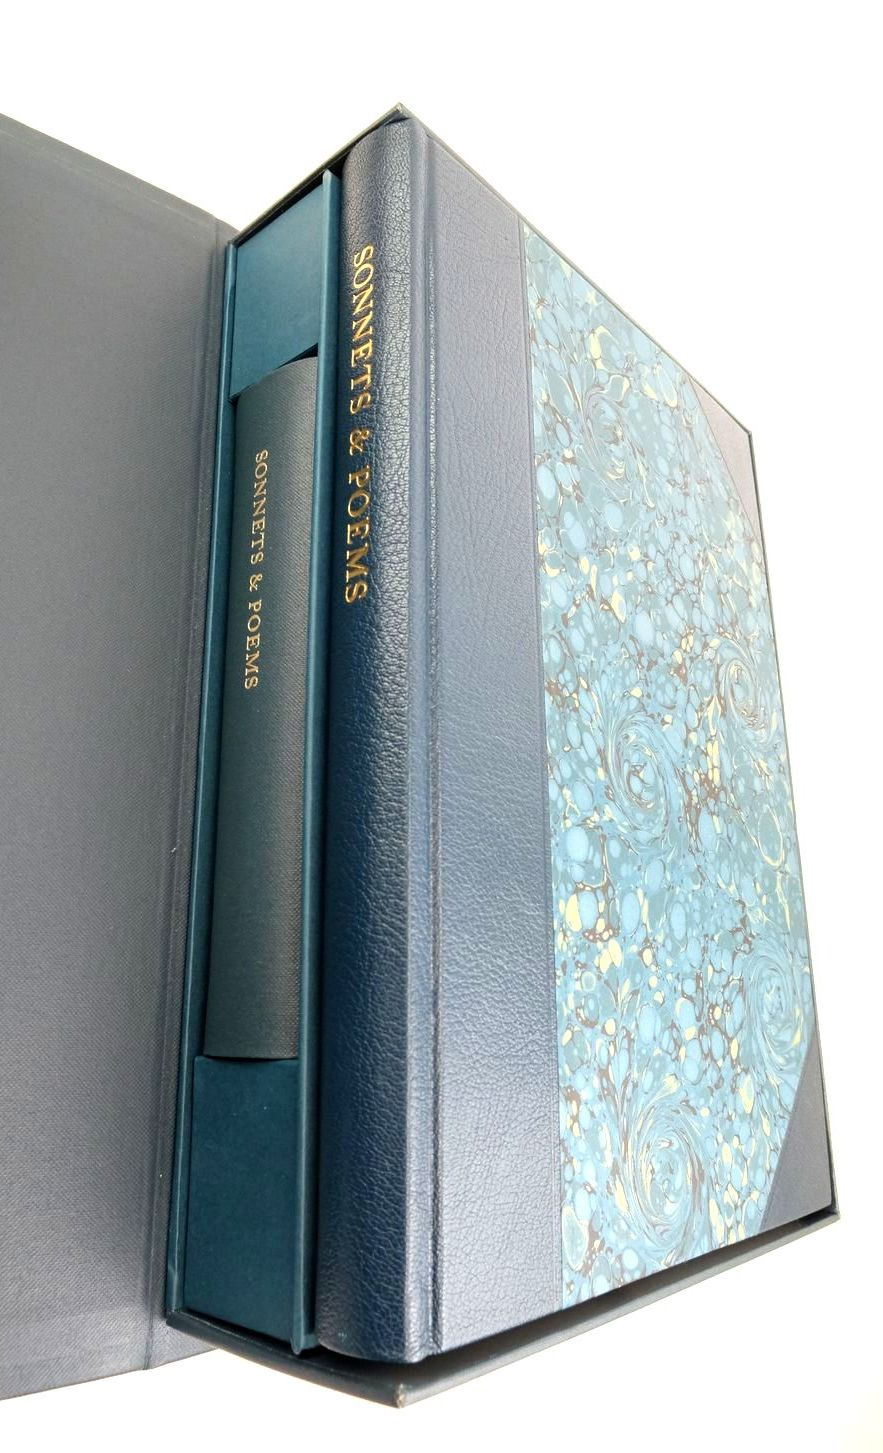 Photo of SONNETS & POEMS (THE LETTERPRESS SHAKESPEARE) written by Shakespeare, William Burrow, Colin published by Folio Society (STOCK CODE: 1821550)  for sale by Stella & Rose's Books